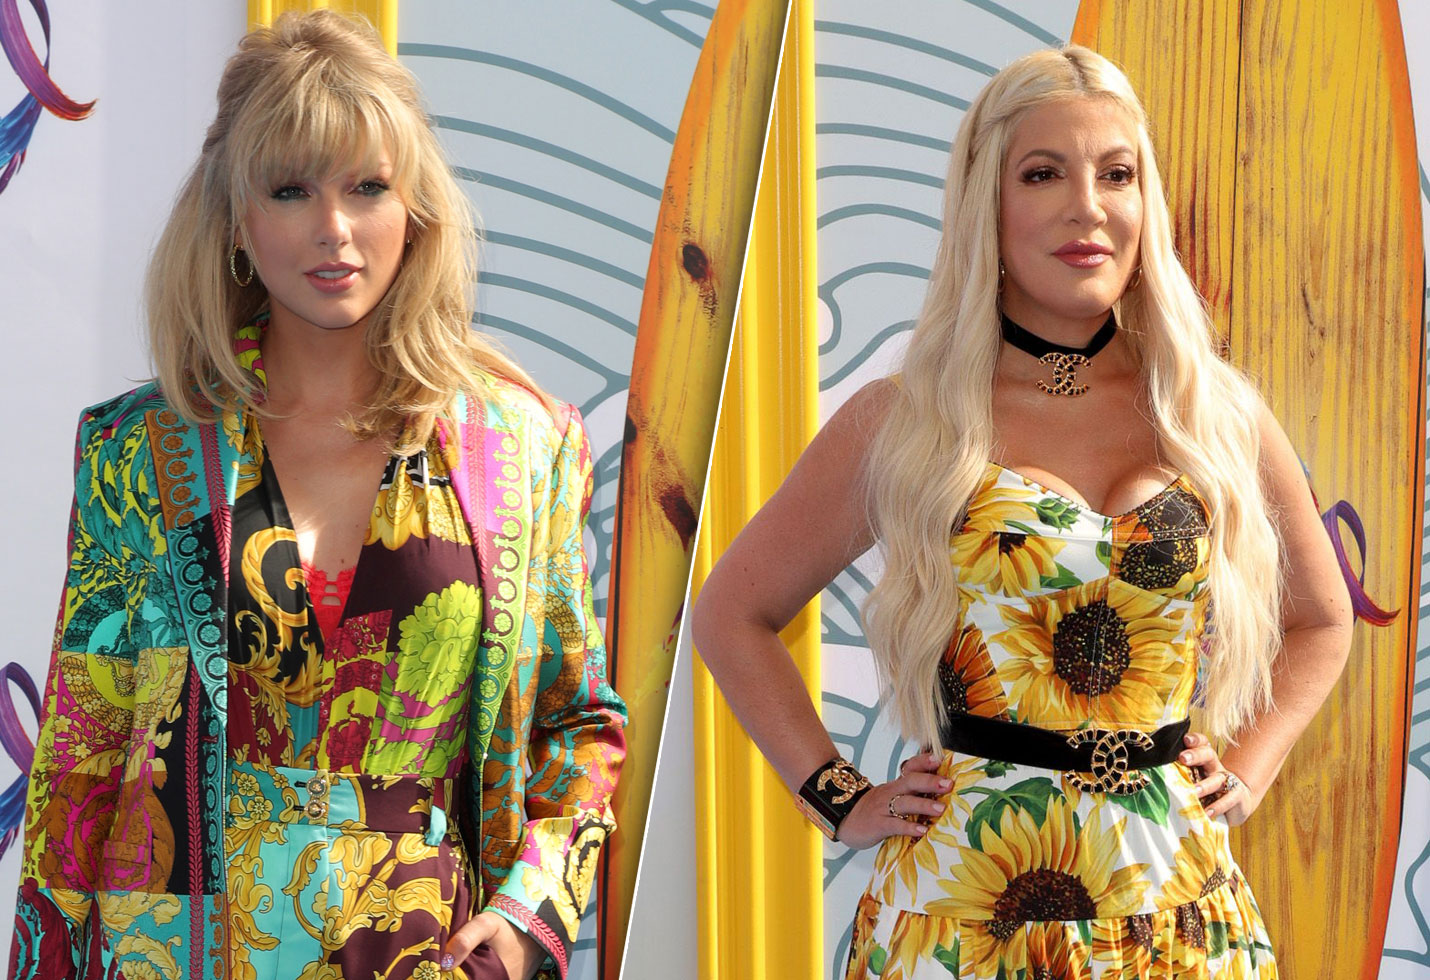 Tori Spelling and Taylor Swift